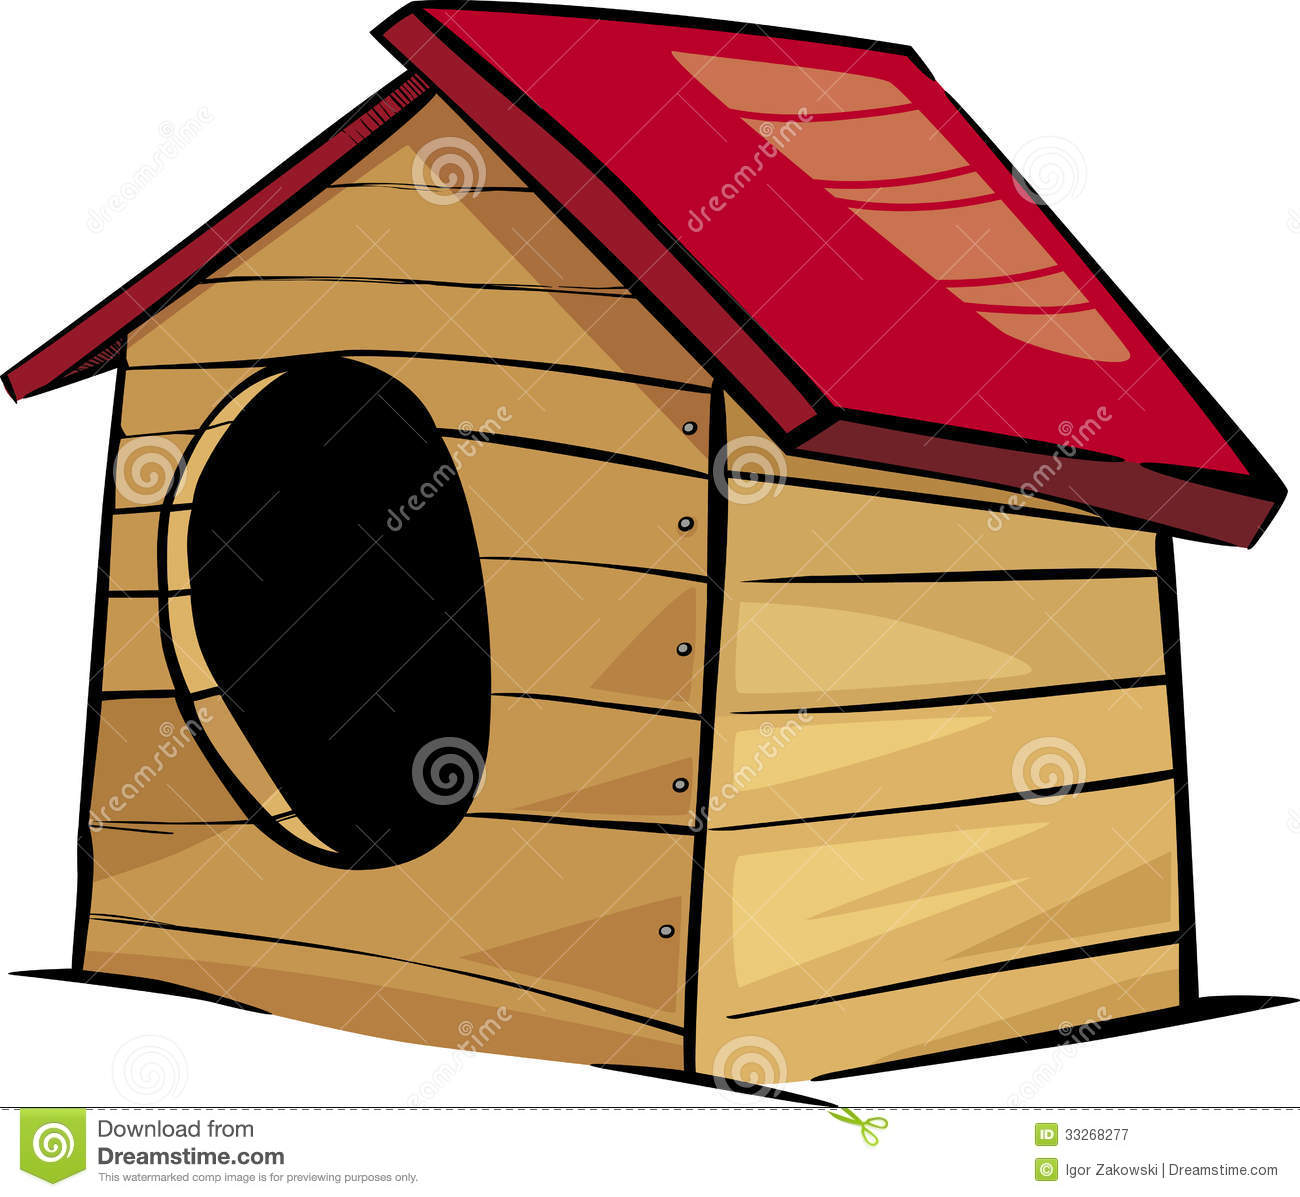 clipart of dog houses - photo #17